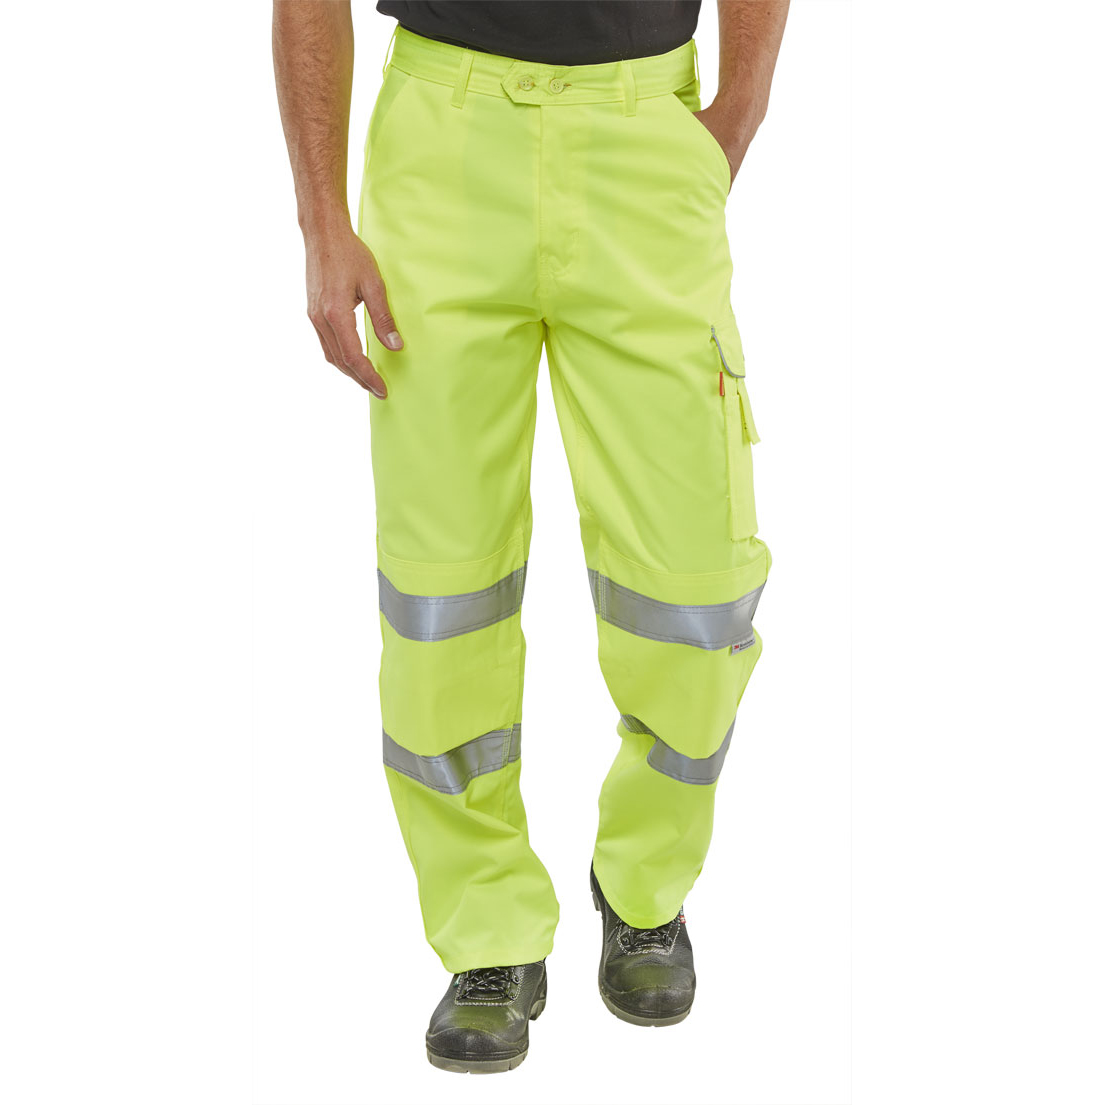 BSeen Trousers Polycotton Hi-Vis EN471 Saturn Yellow 48 Long Ref PCTENSY48T *Up to 3 Day Leadtime*